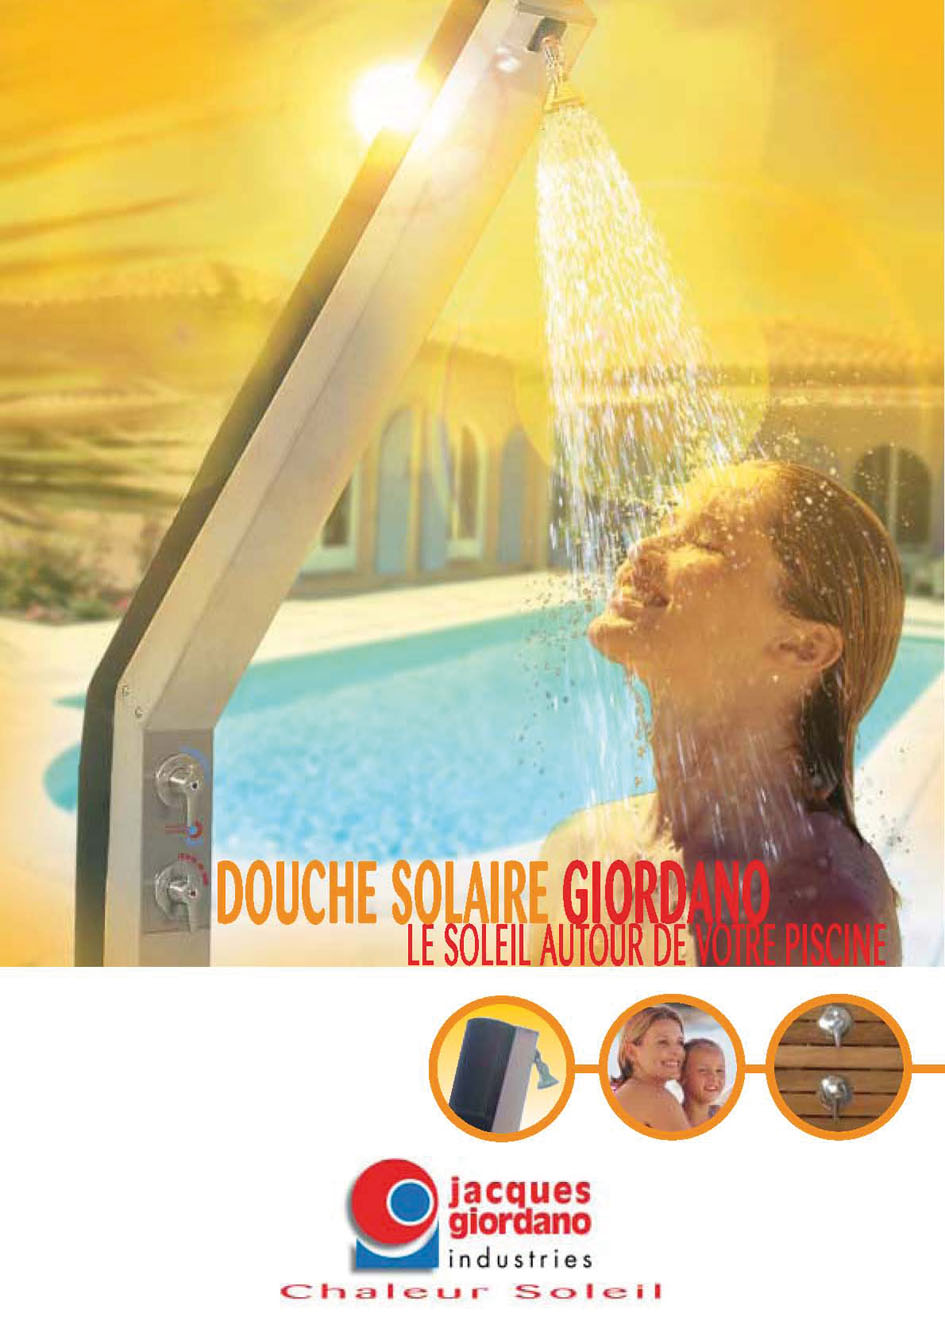 Douche piscine giordano courb e for Boutique de la piscine